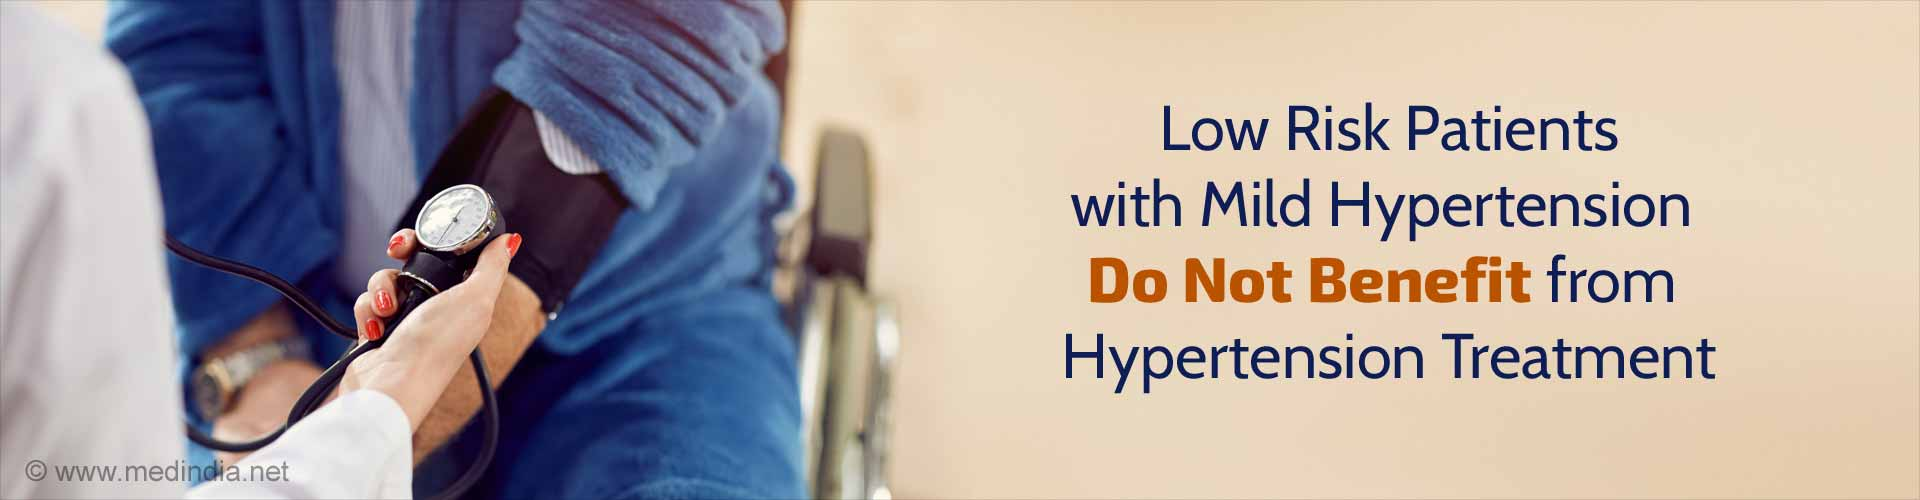 Low risk patients with mild hypertension do not benefit from hypertension treatment.